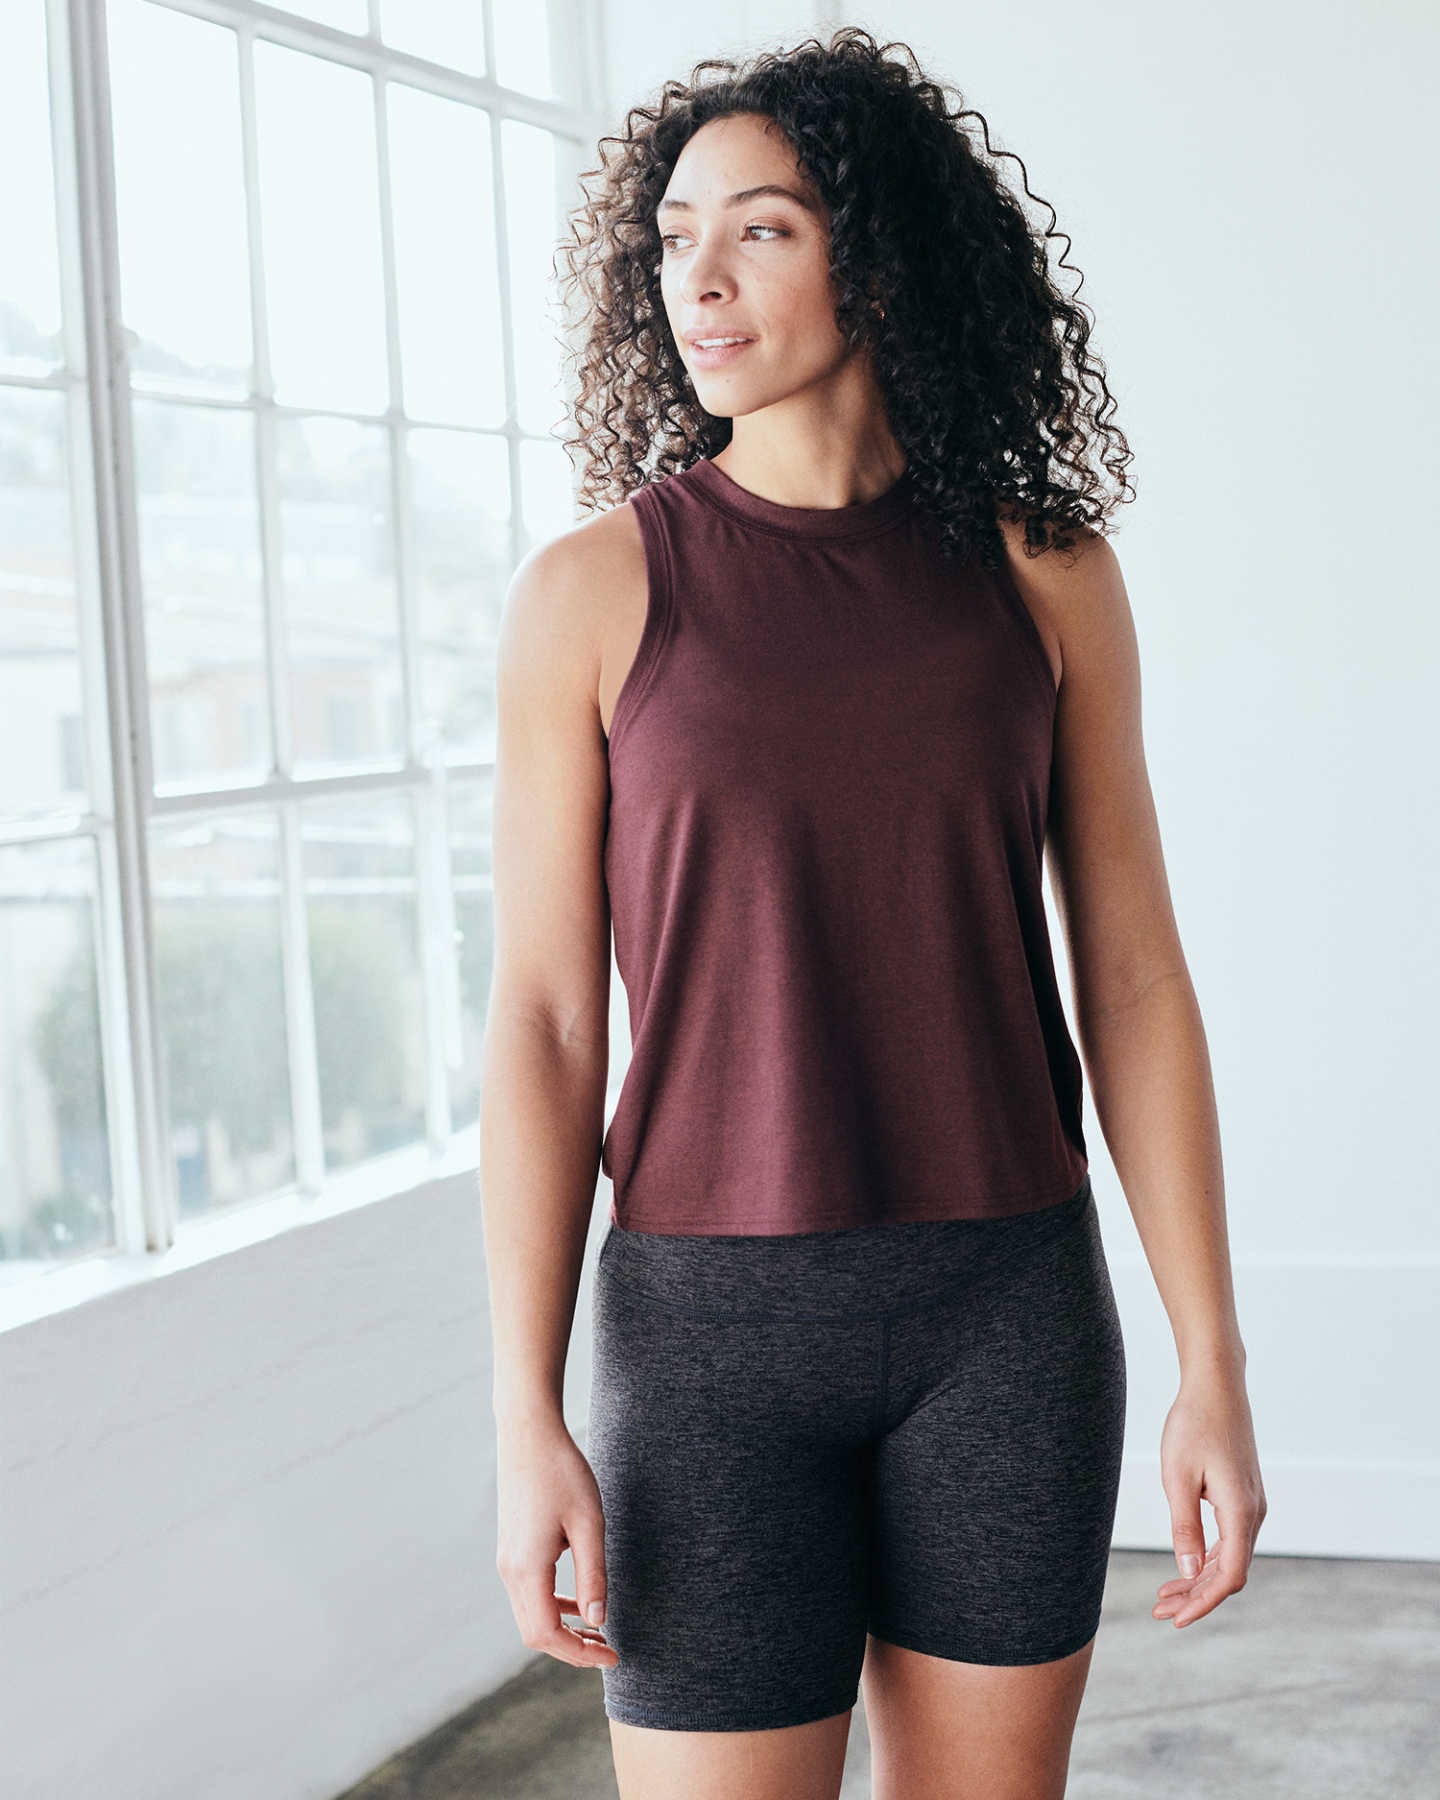 Flowknit Ultra-Soft Performance Tank - Burgundy - 2 - Thumbnail